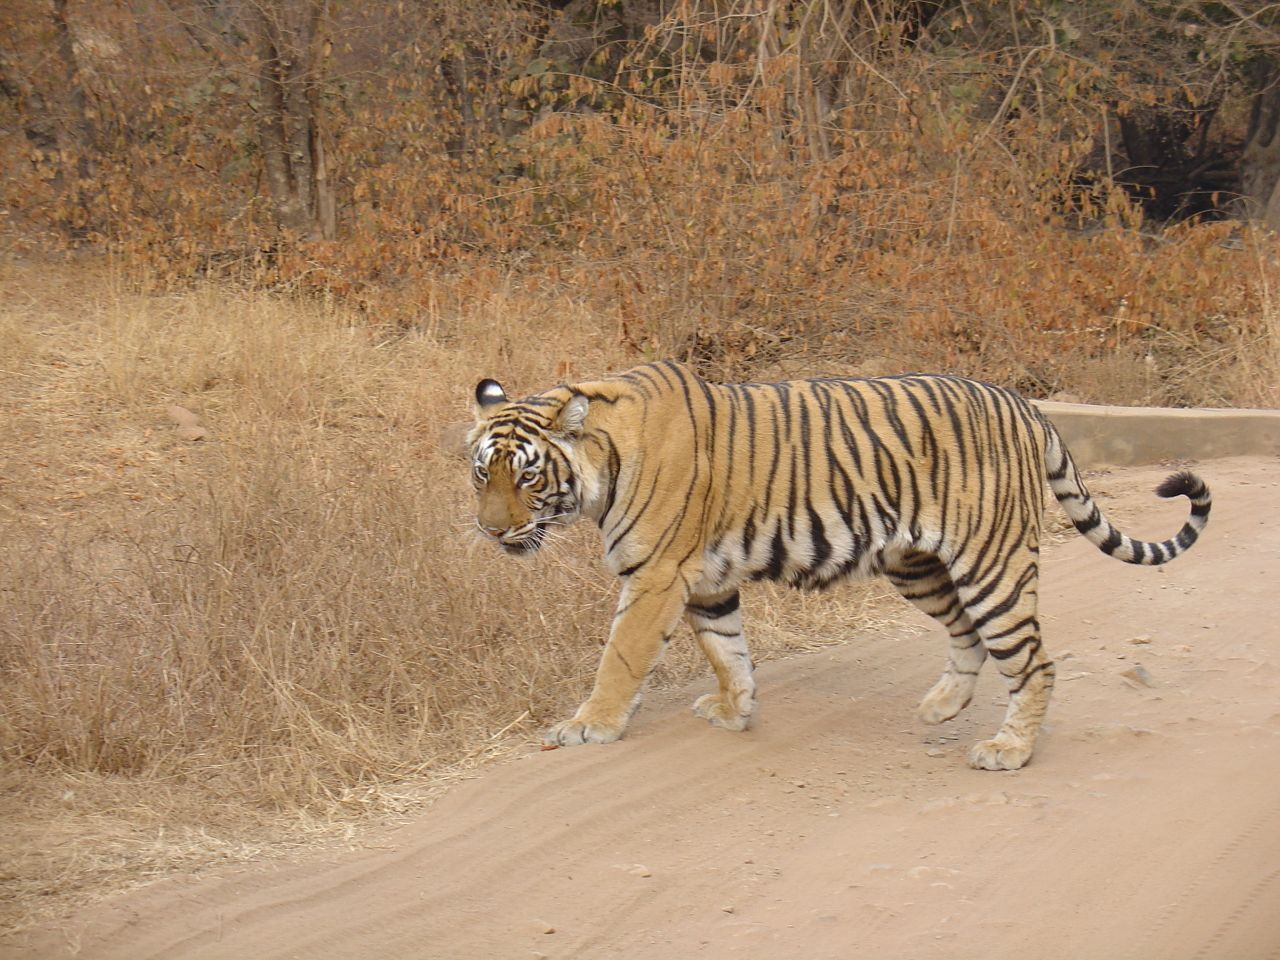 Palamu National Park Image